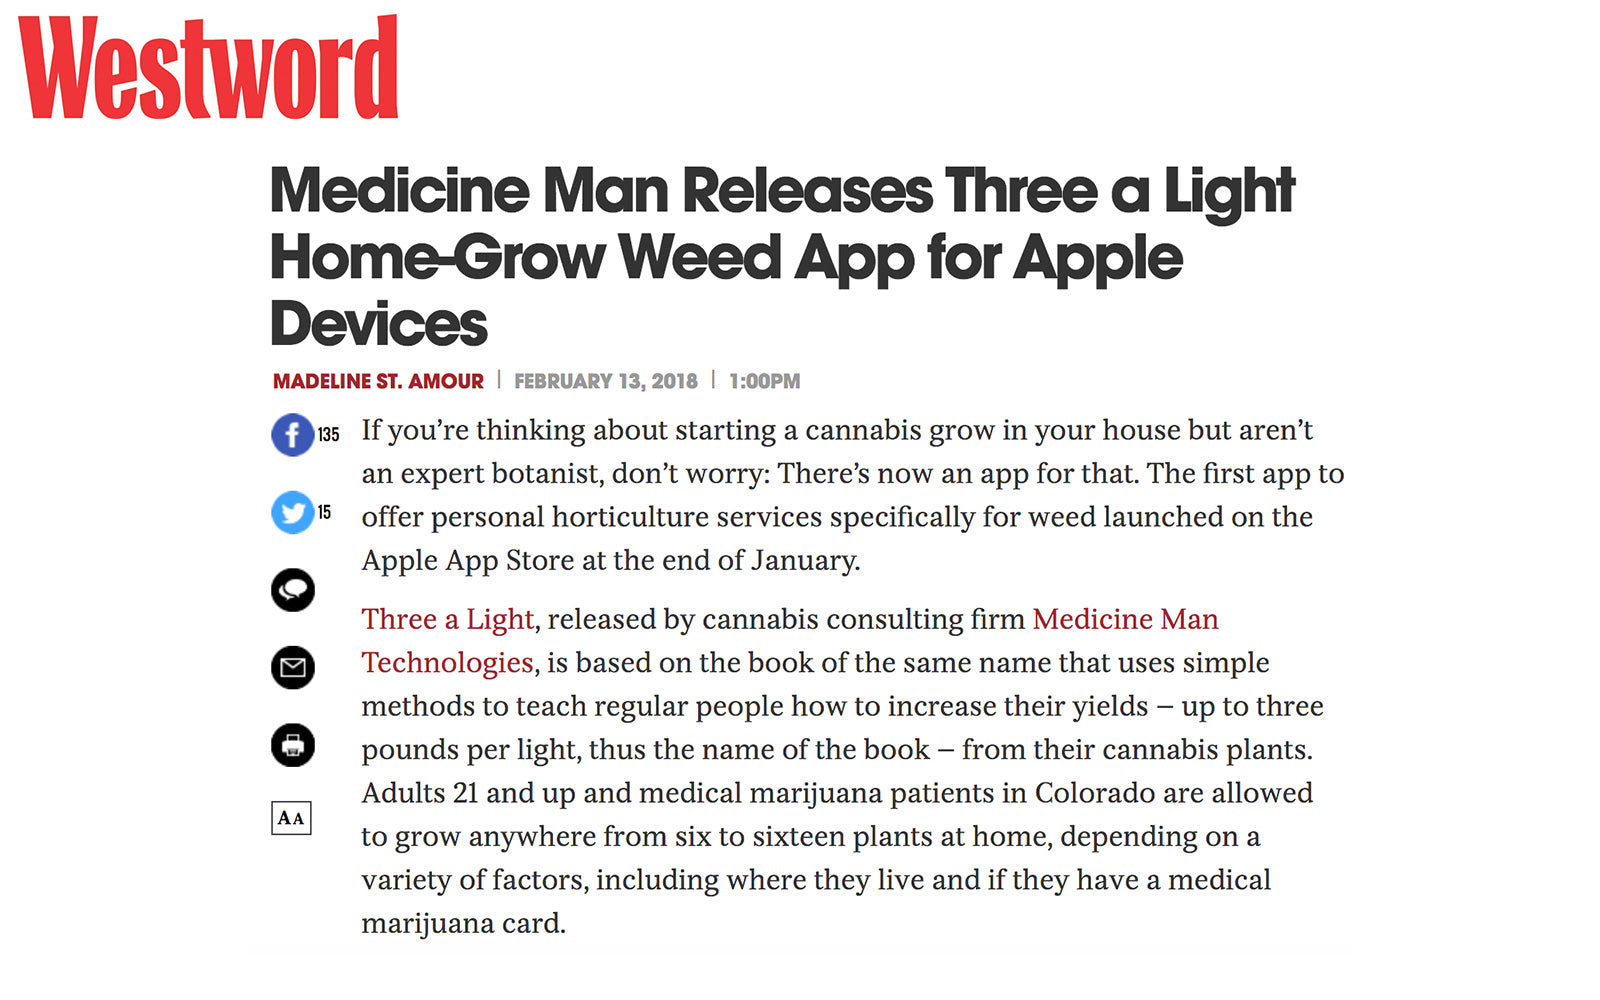 Westword - Medicine Man Technologies Releases Three a Light Home-Grow Weed App for Apple Devices